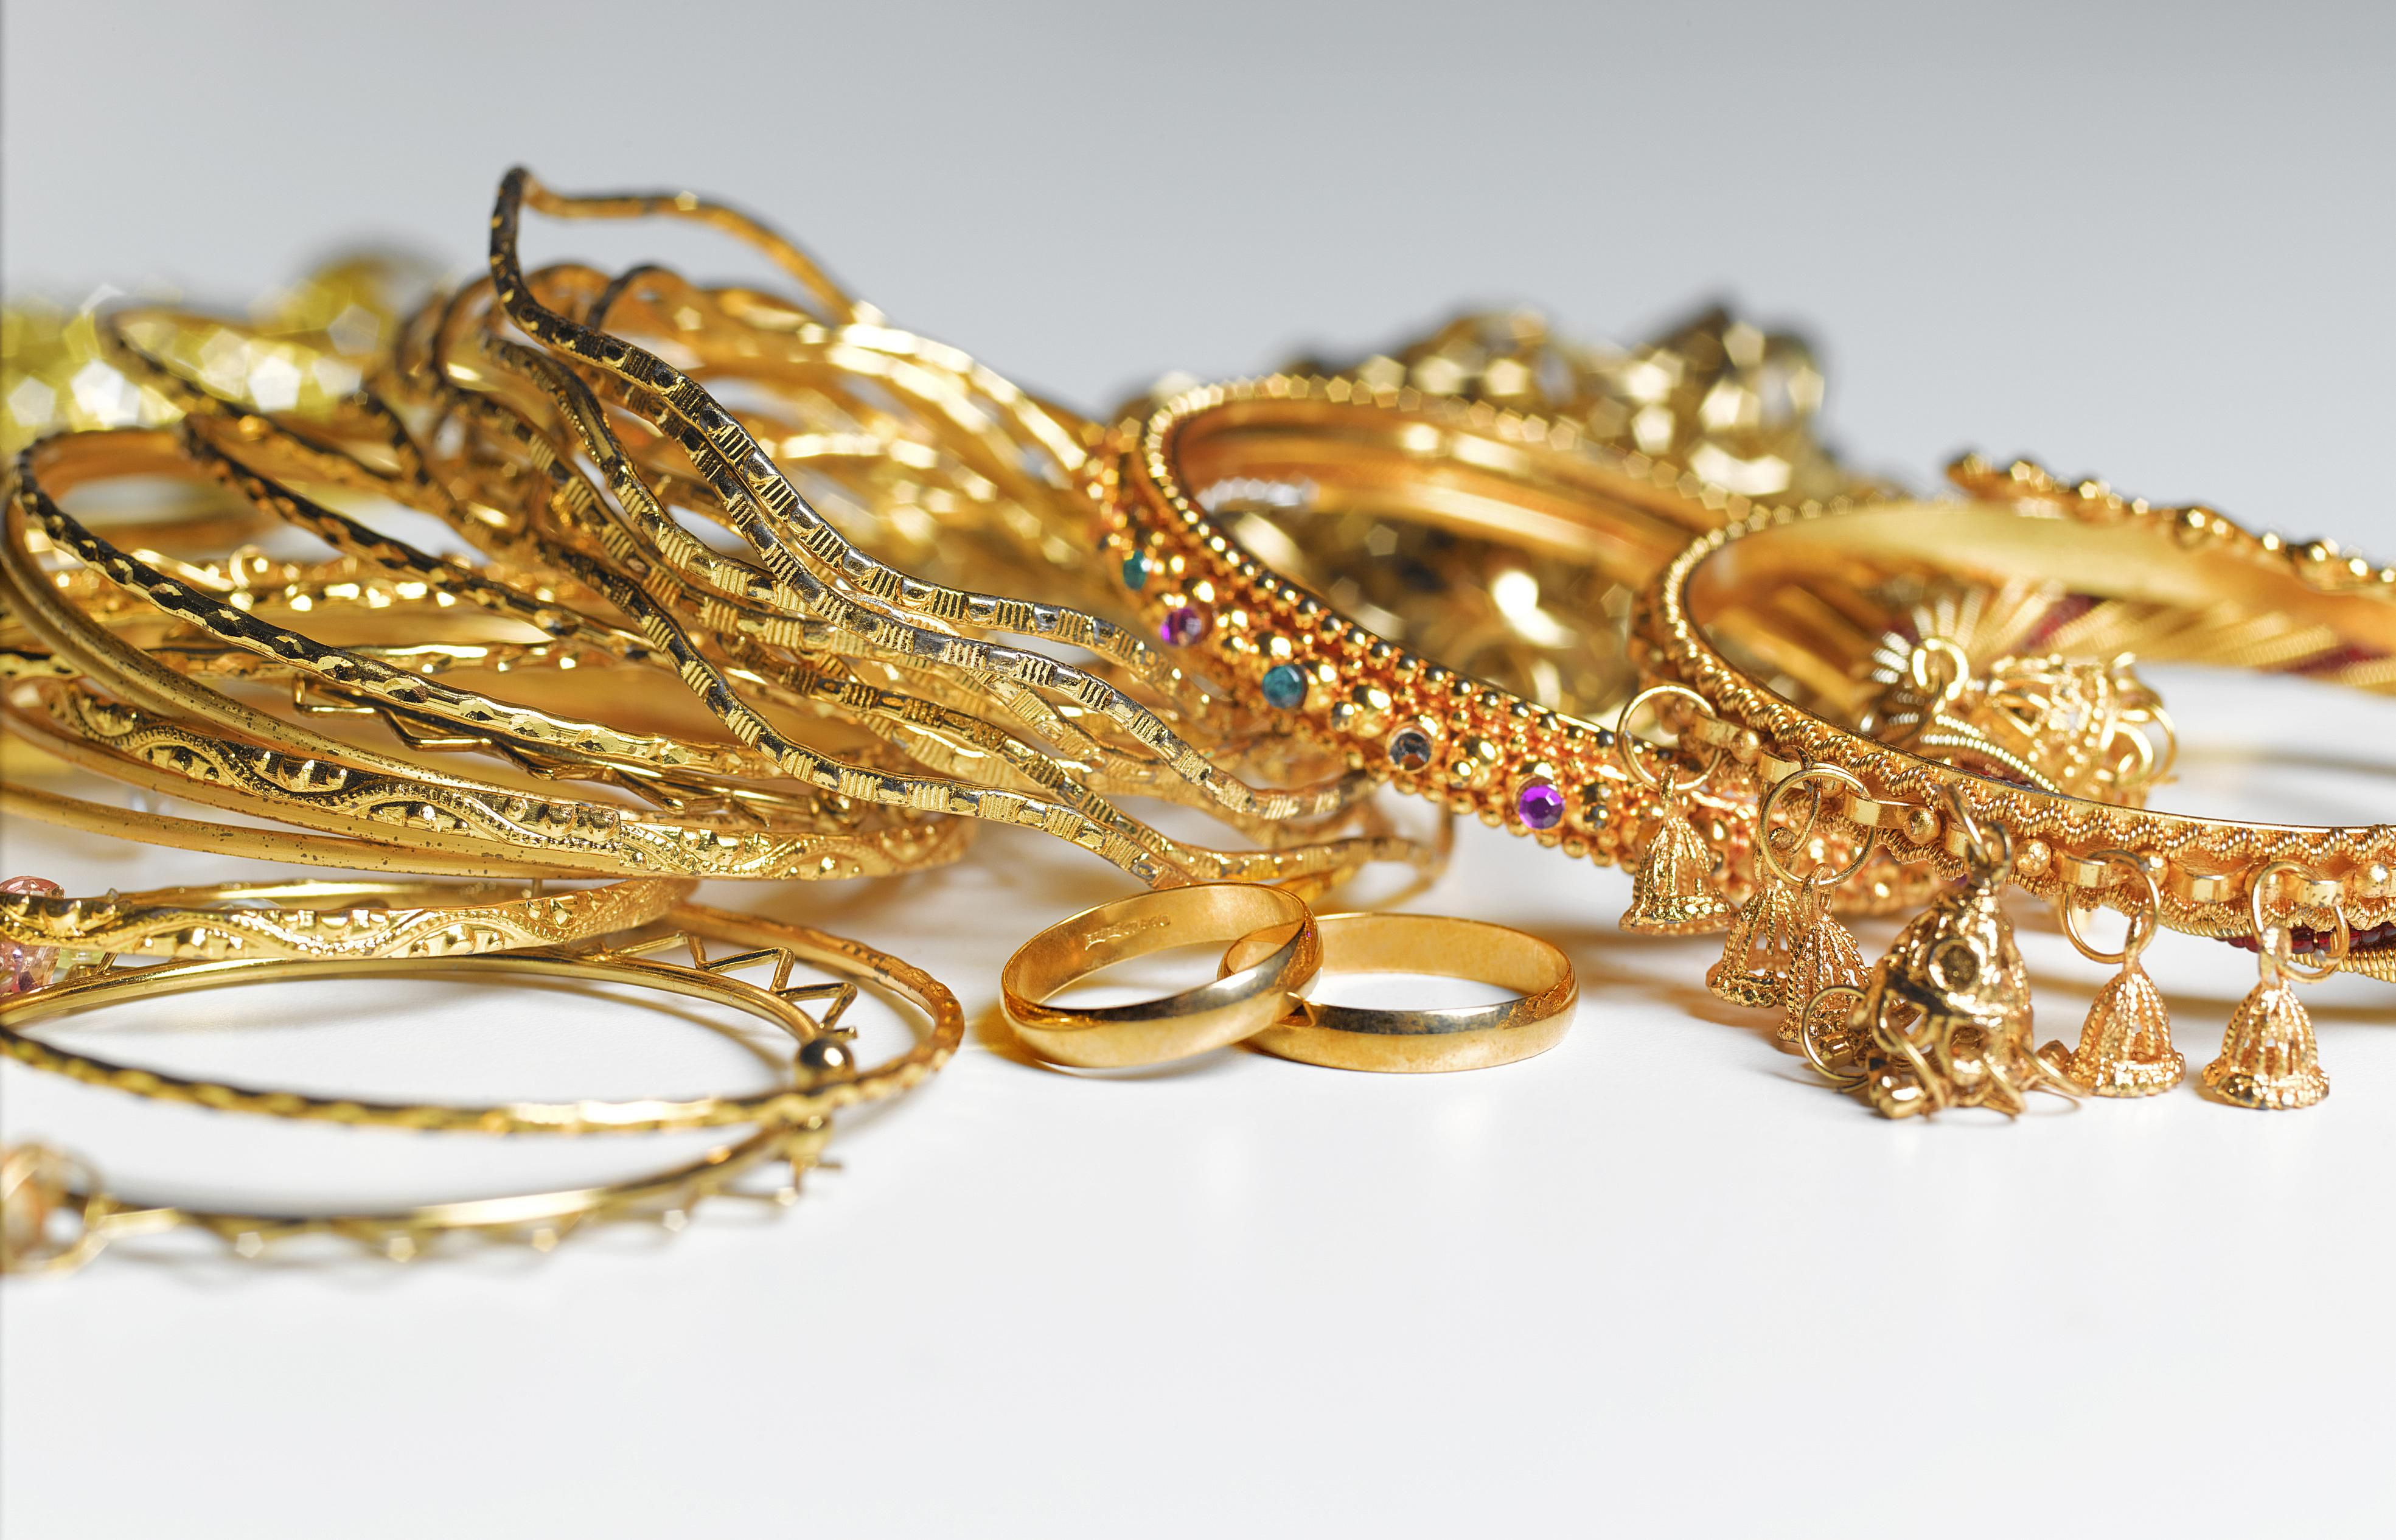 Where to Find Gold To Recycle and Use